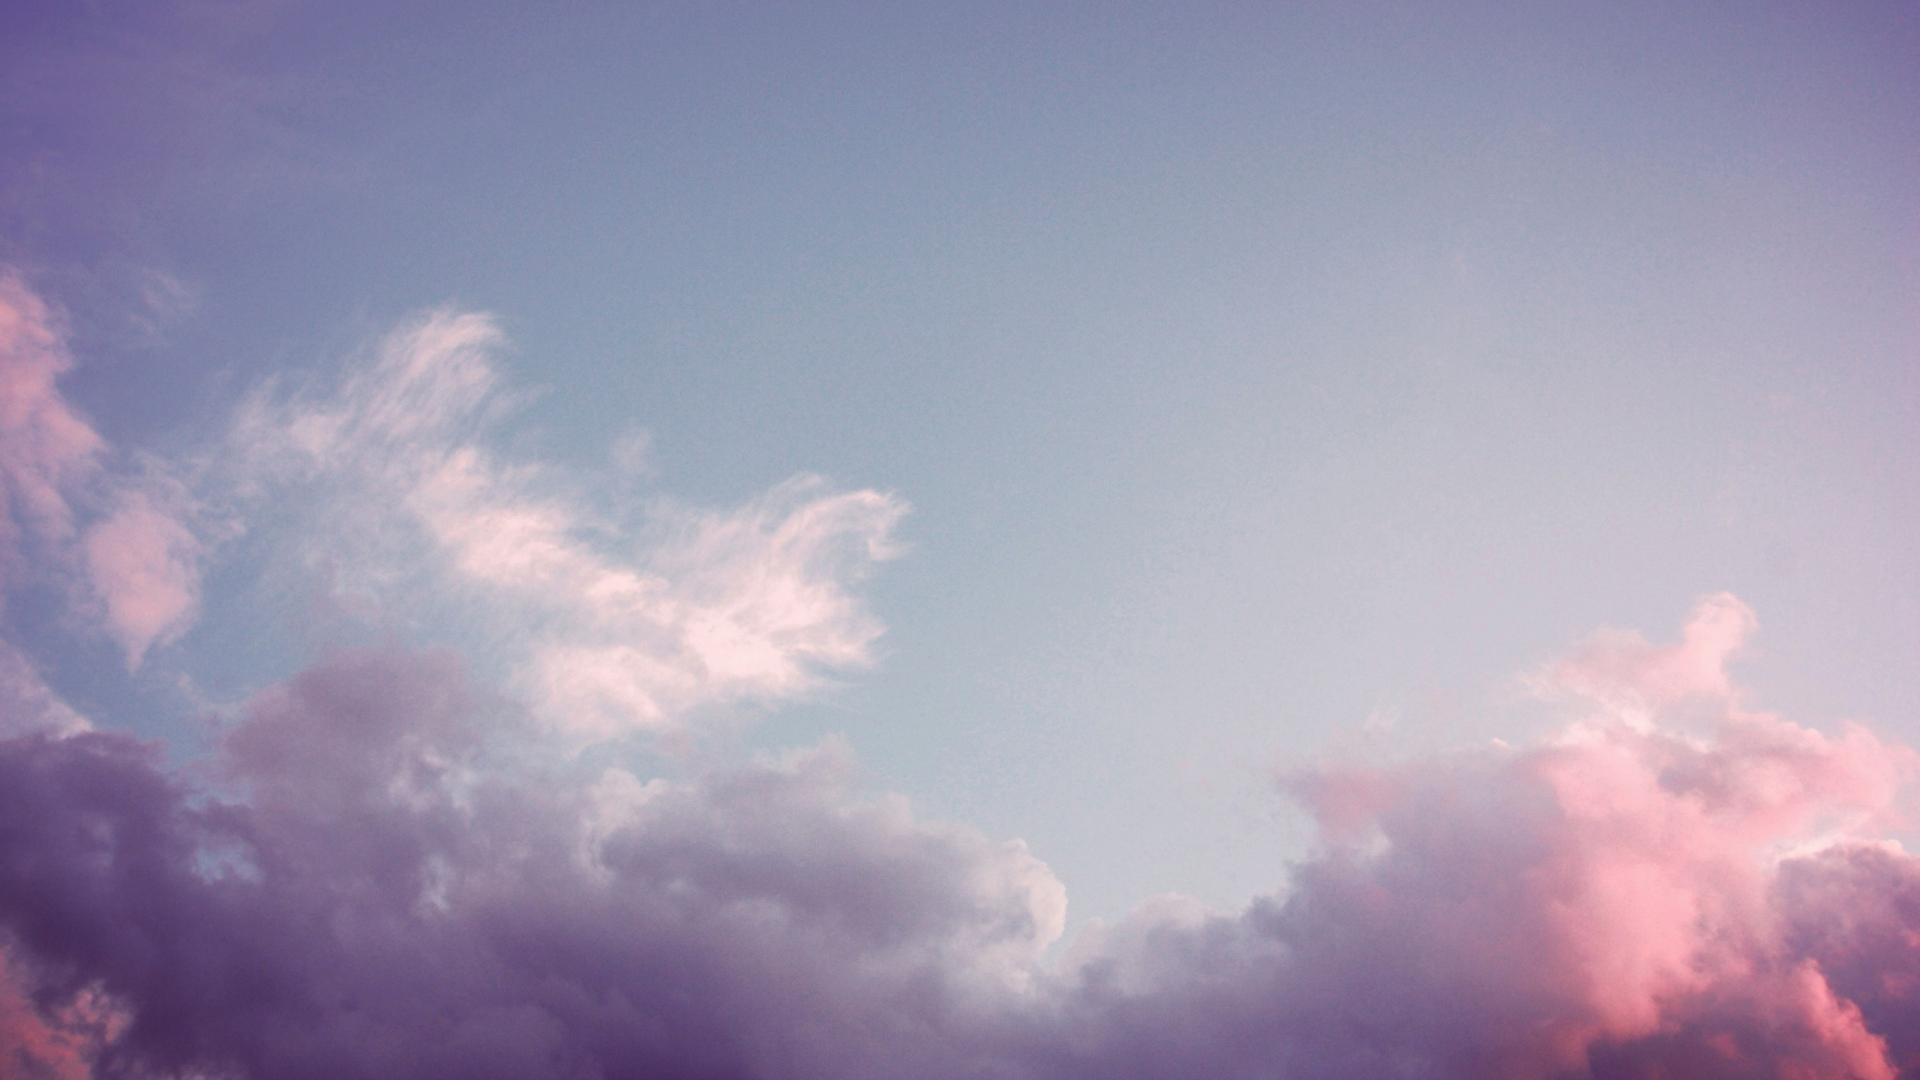 wallpaper.wiki-Cloudy-Sky-Background-Full-HD-PIC-